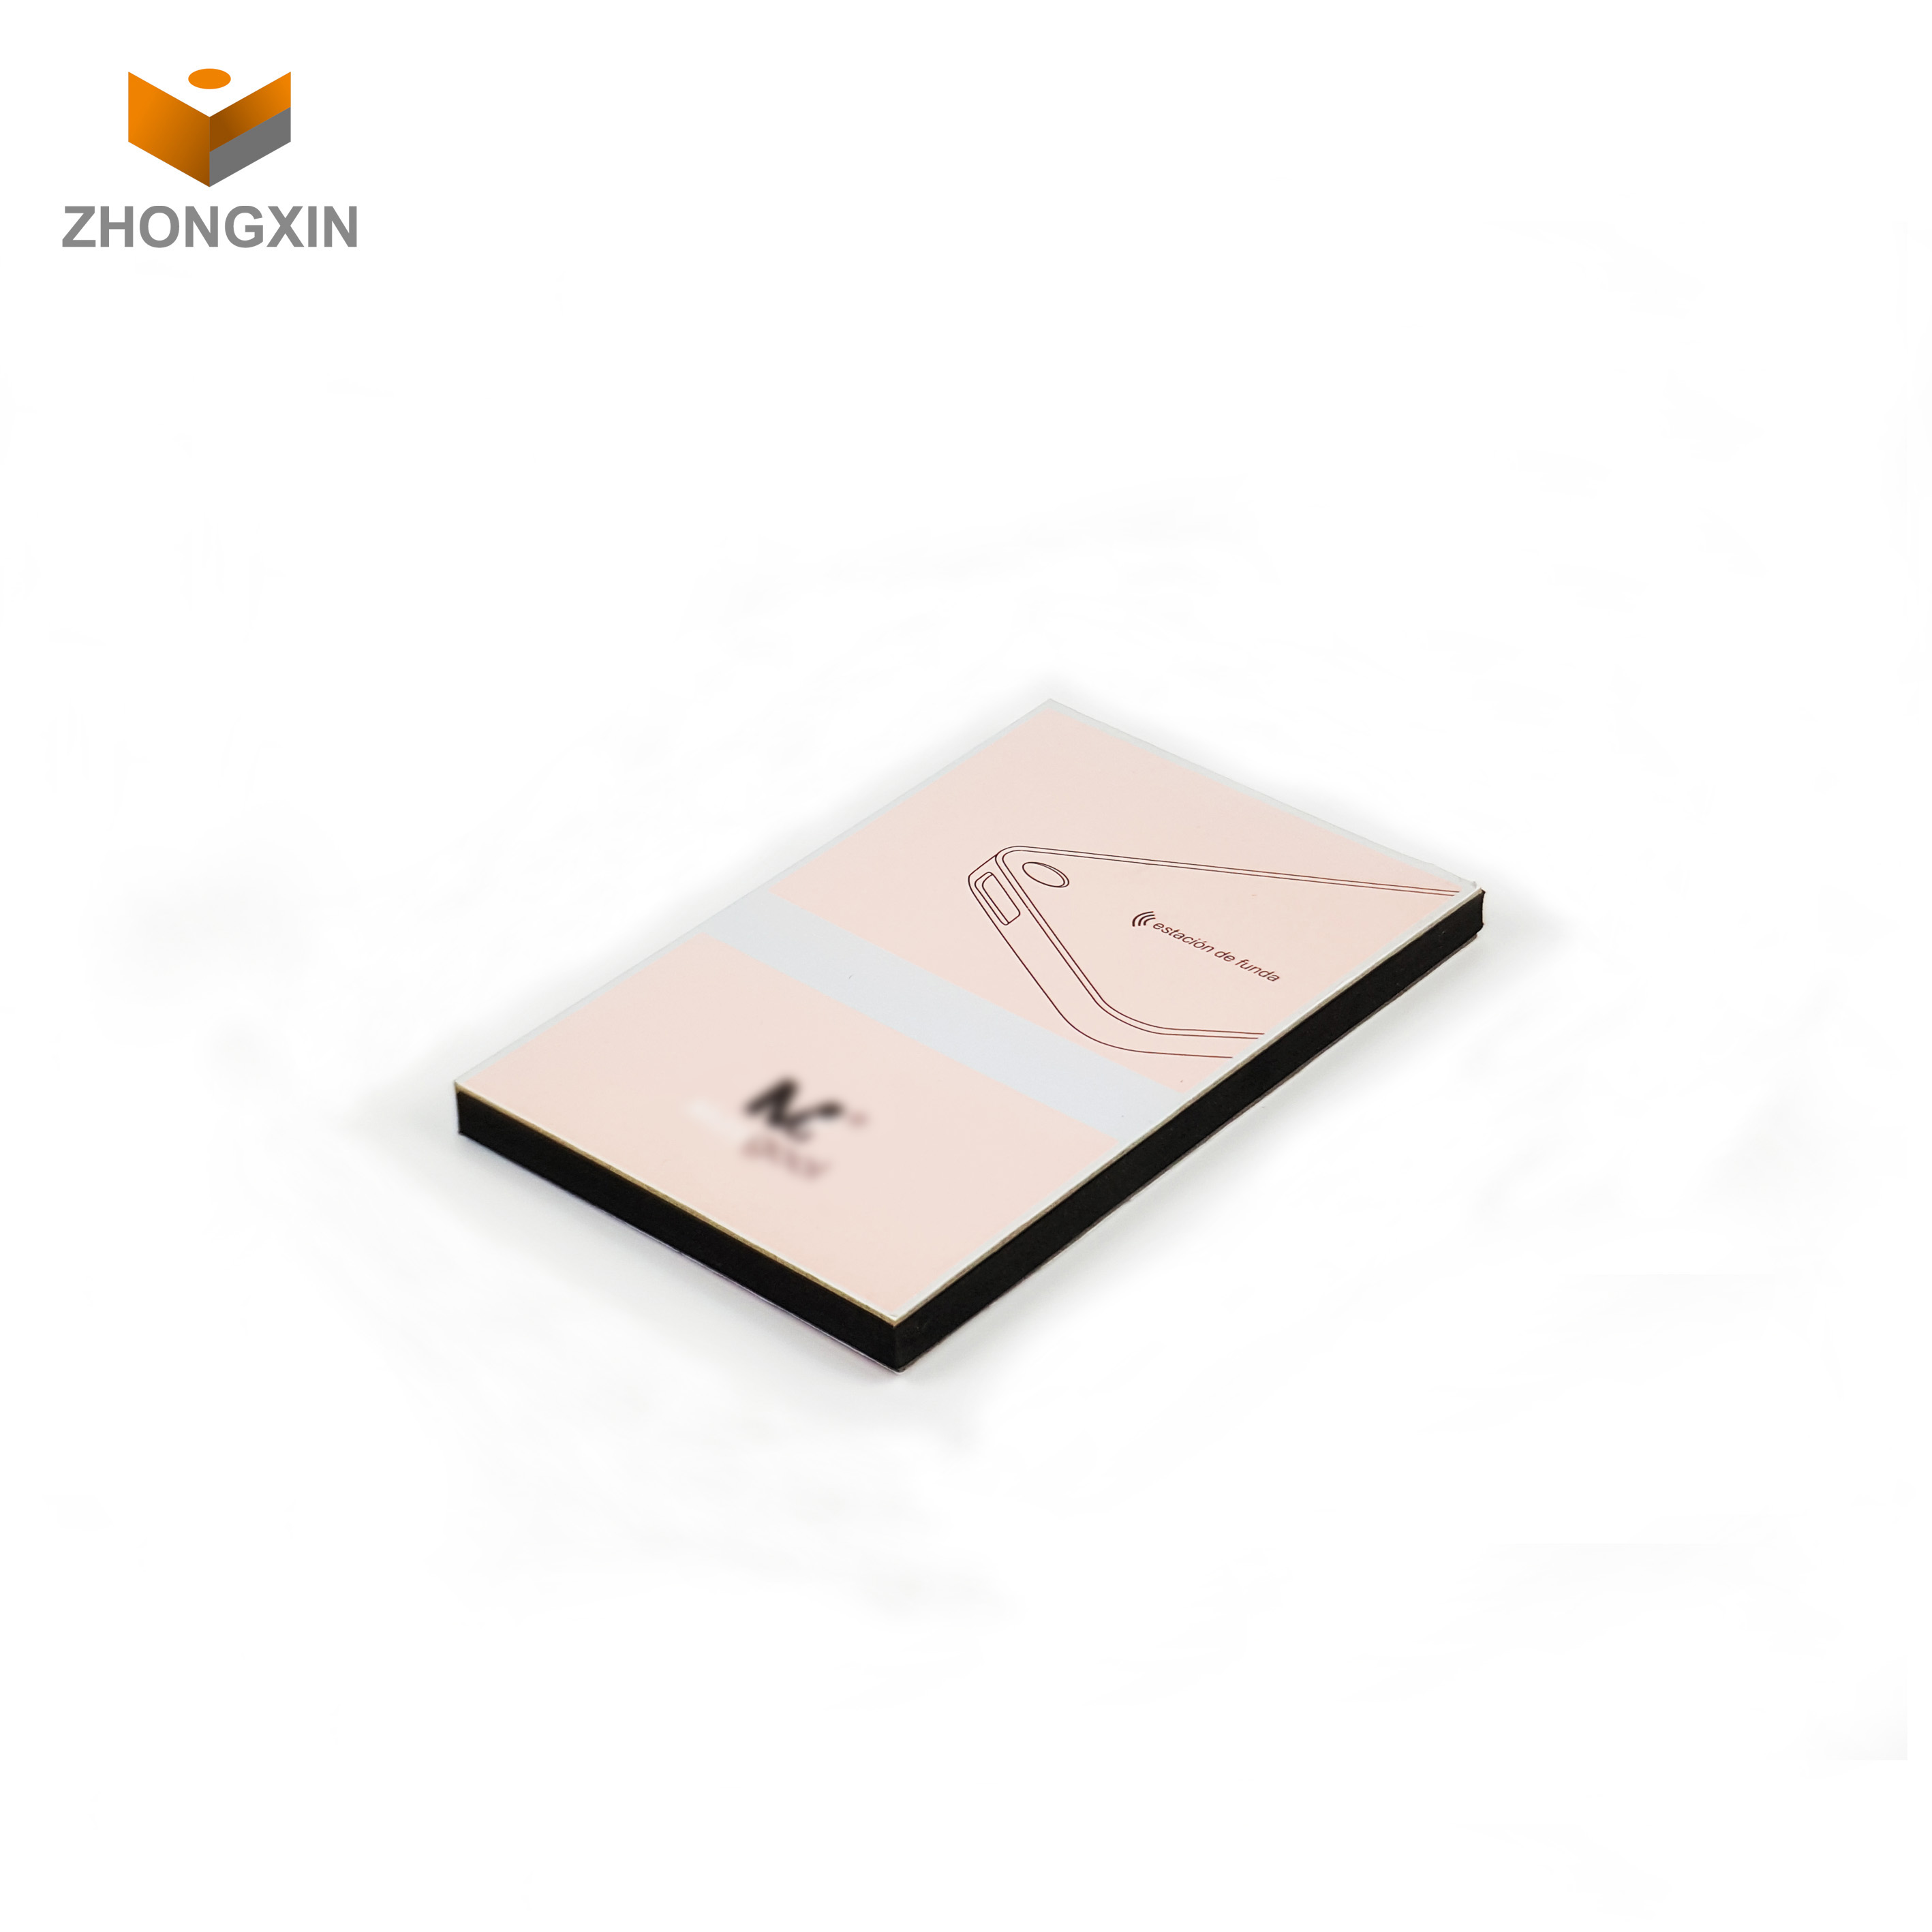 book shaped style packaging screen protector